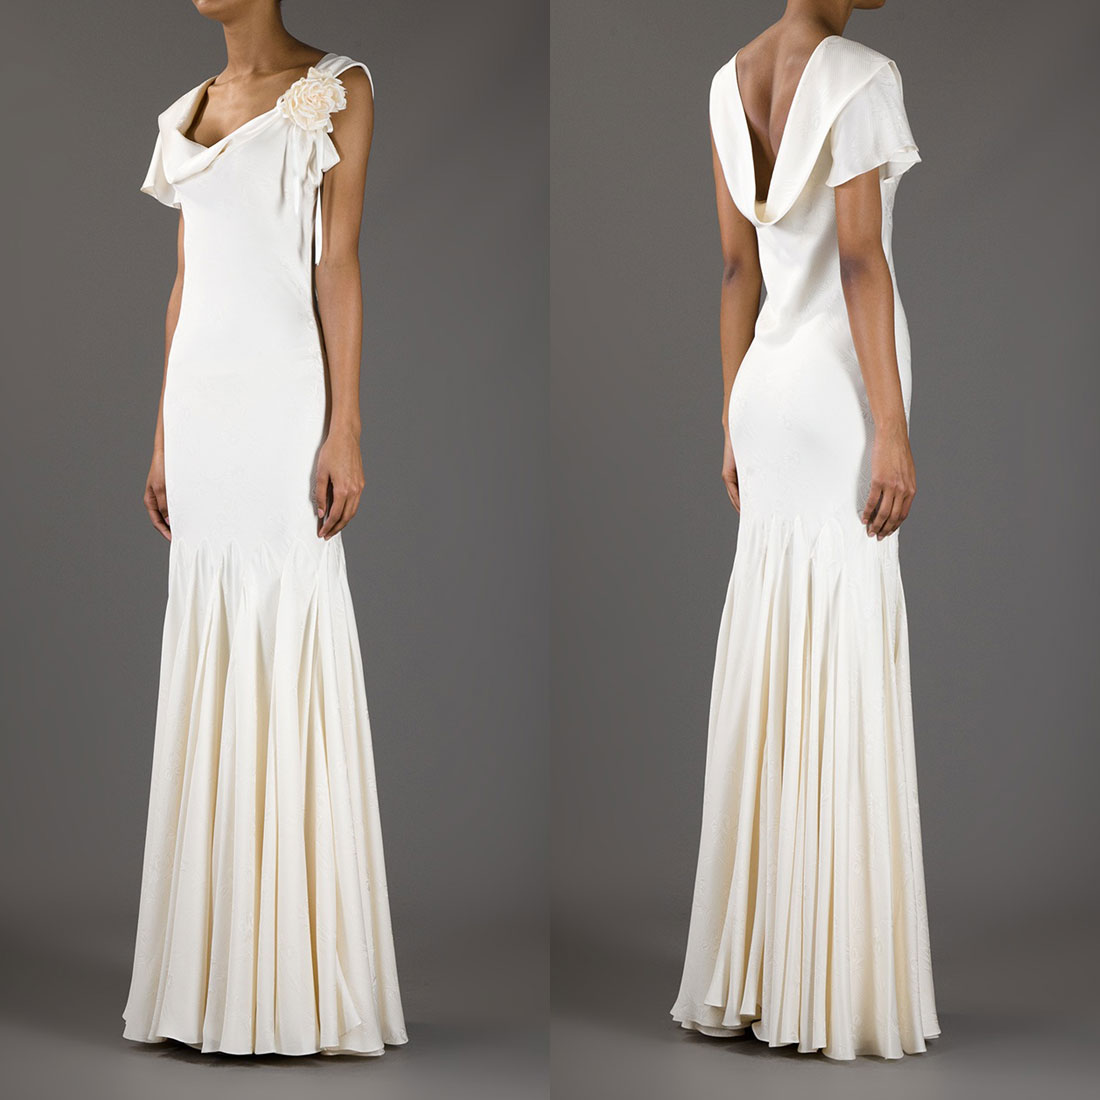 Why mess with a good thing? For Pippa's own nuptials, we could see her slipping into another body-skimming cowl-neck gown to show off that famous figure. And if she were looking to re-create the same effect, why not reach for another McQueen gown, like this one.